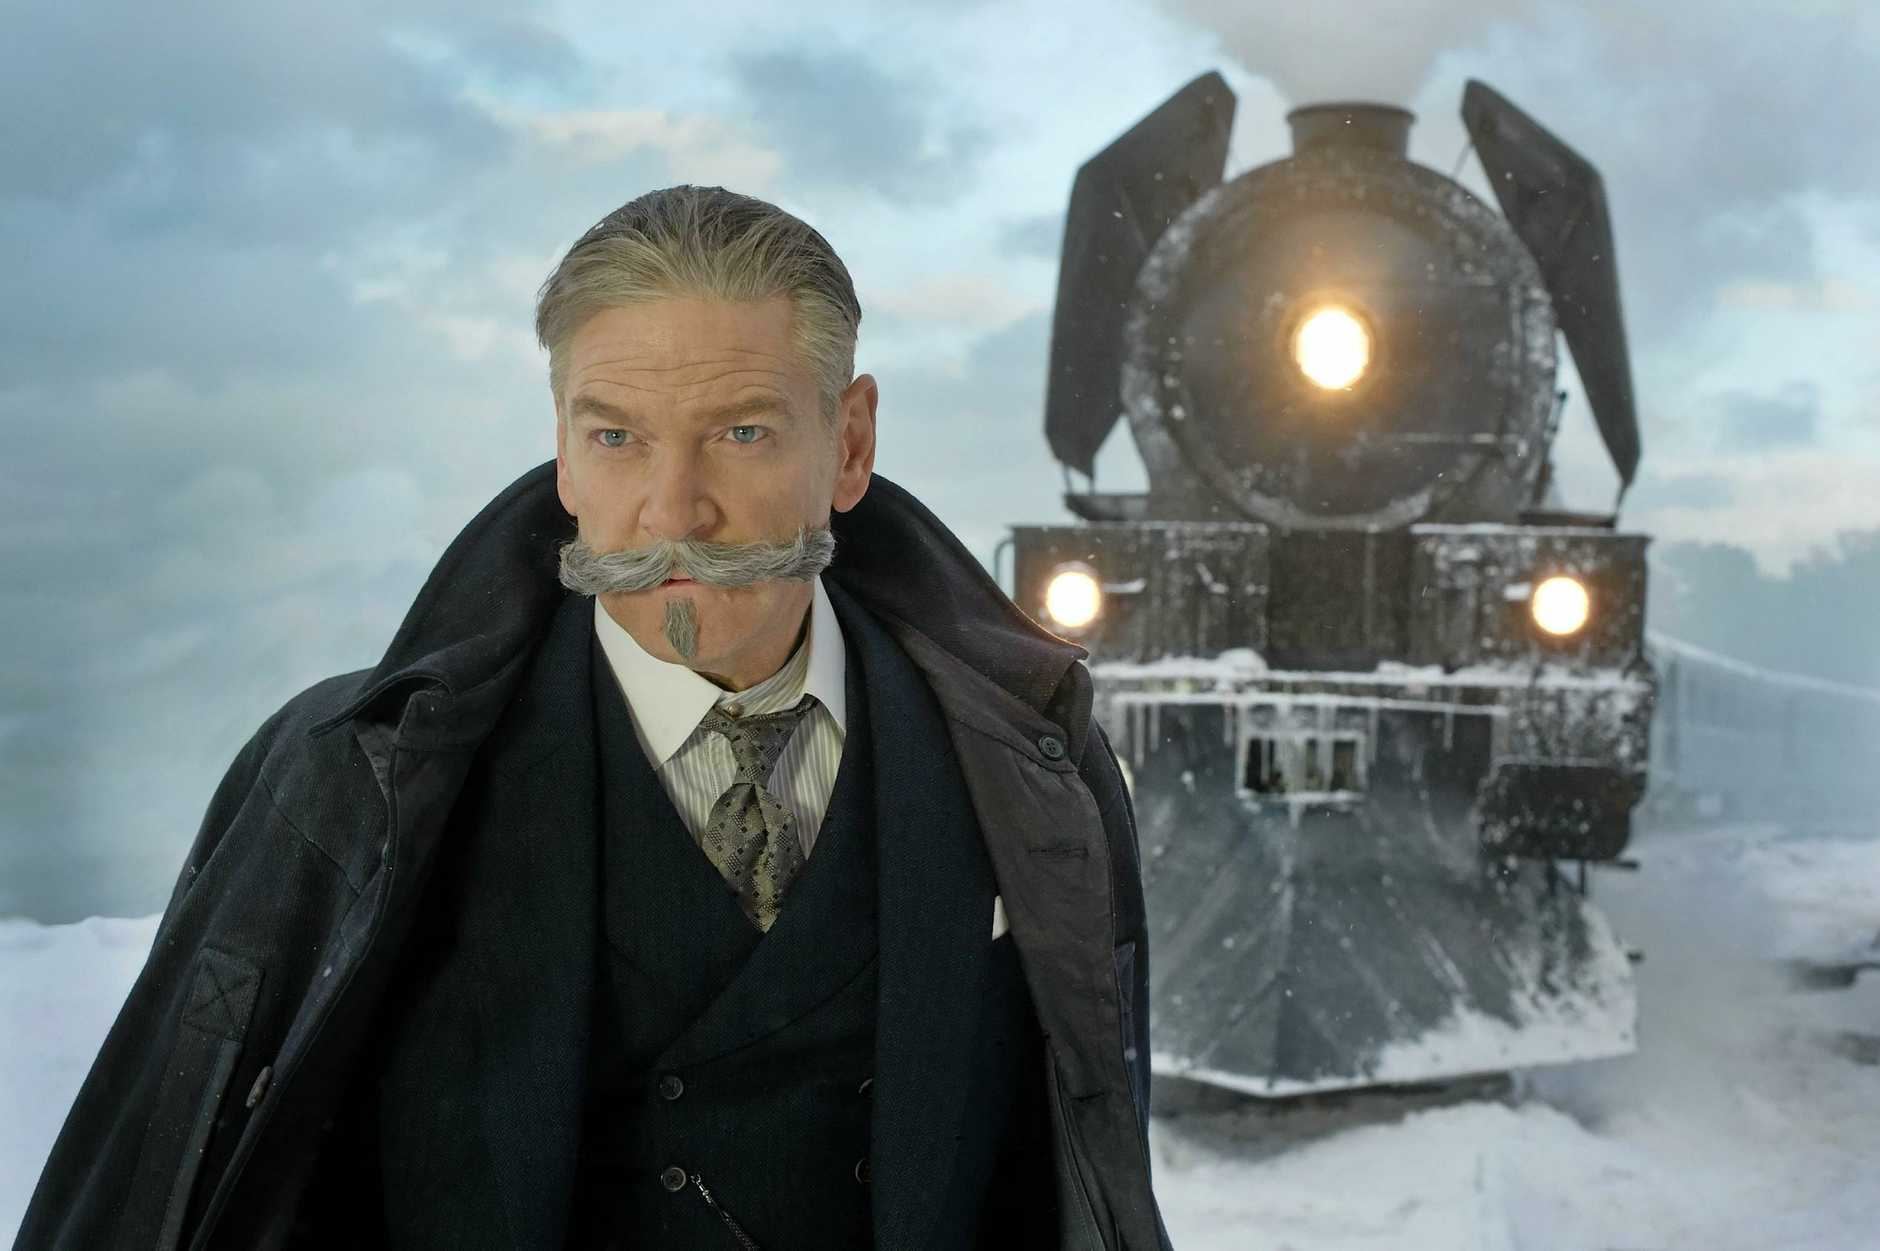 Kenneth Branagh stars as Hercule Poirot in the movie Murder on the Orient Express.